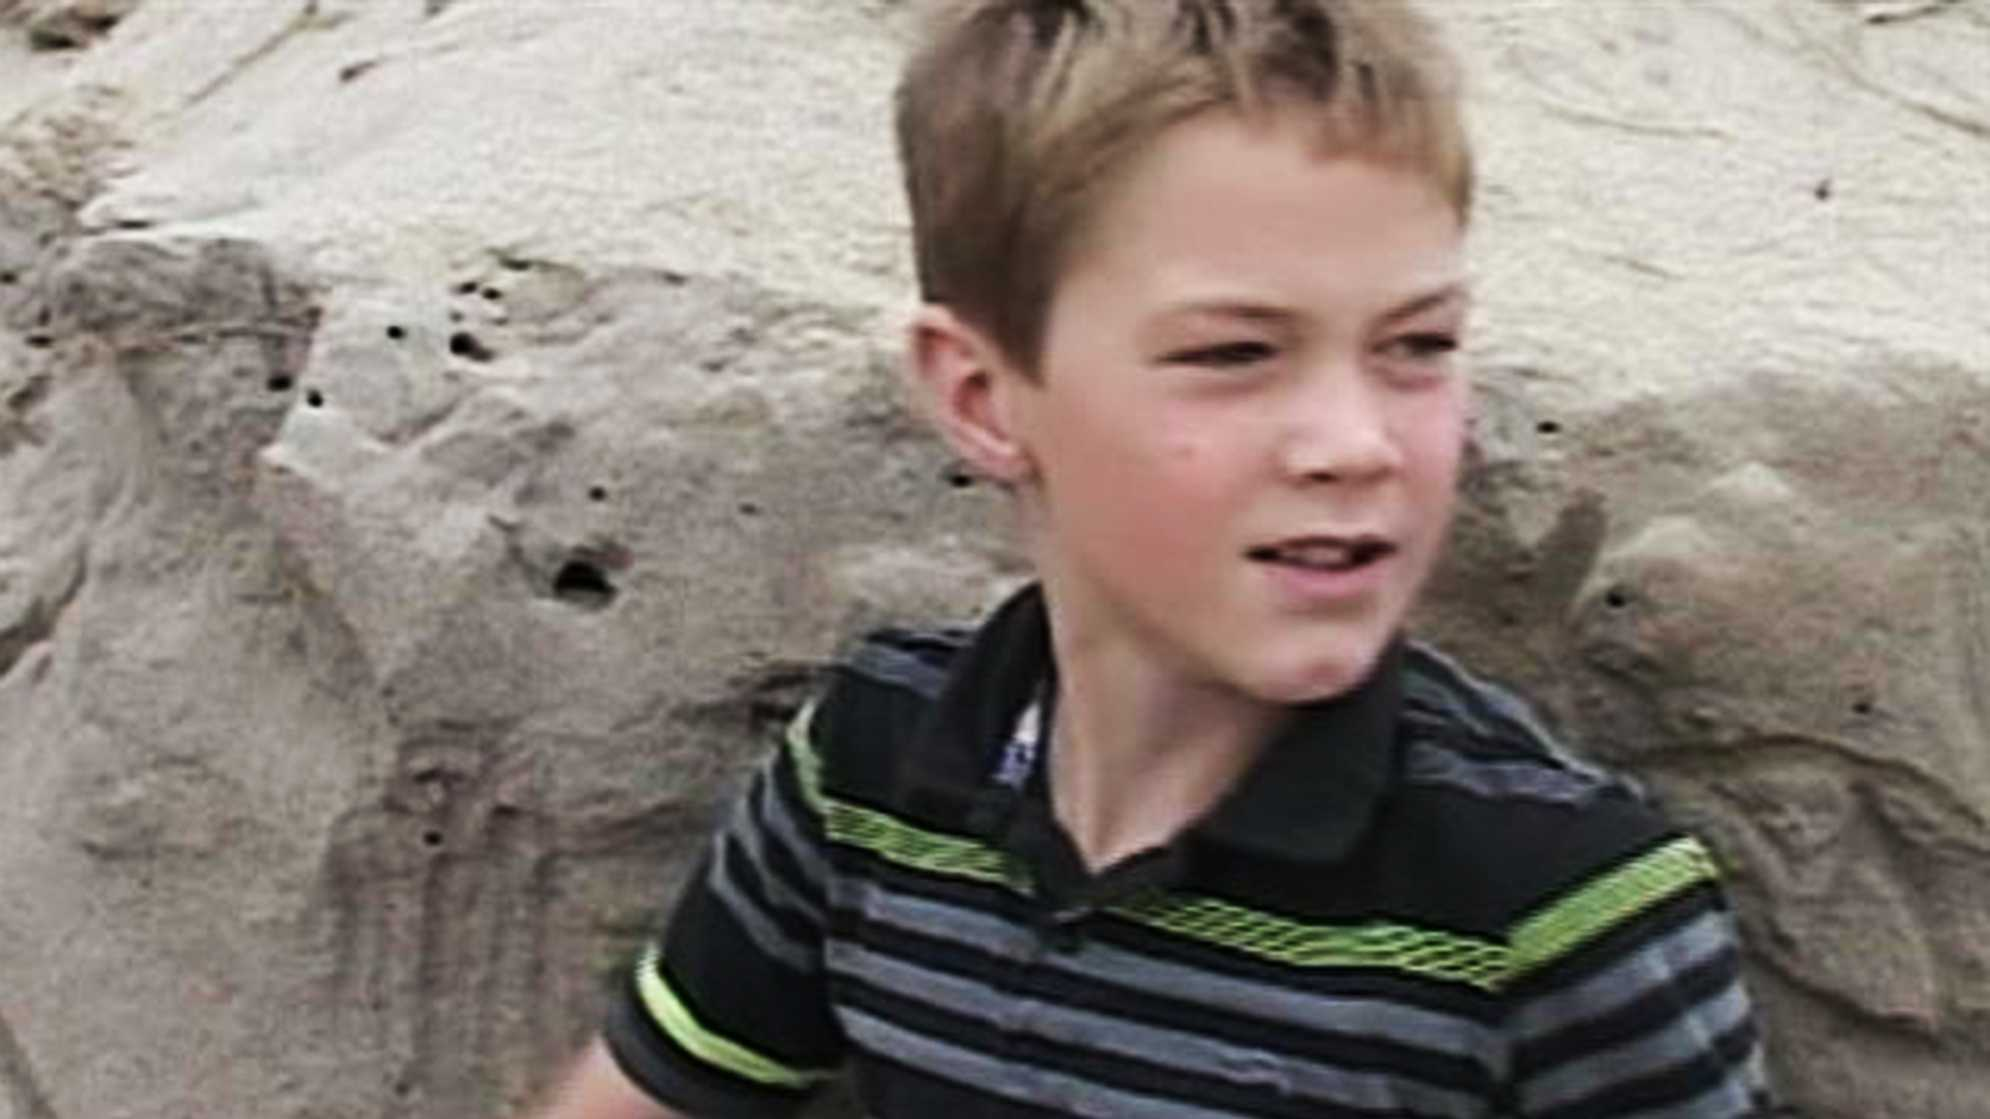 Connor Fitz-Gerald saved a little girl who was buried when a sand cave collapsed.